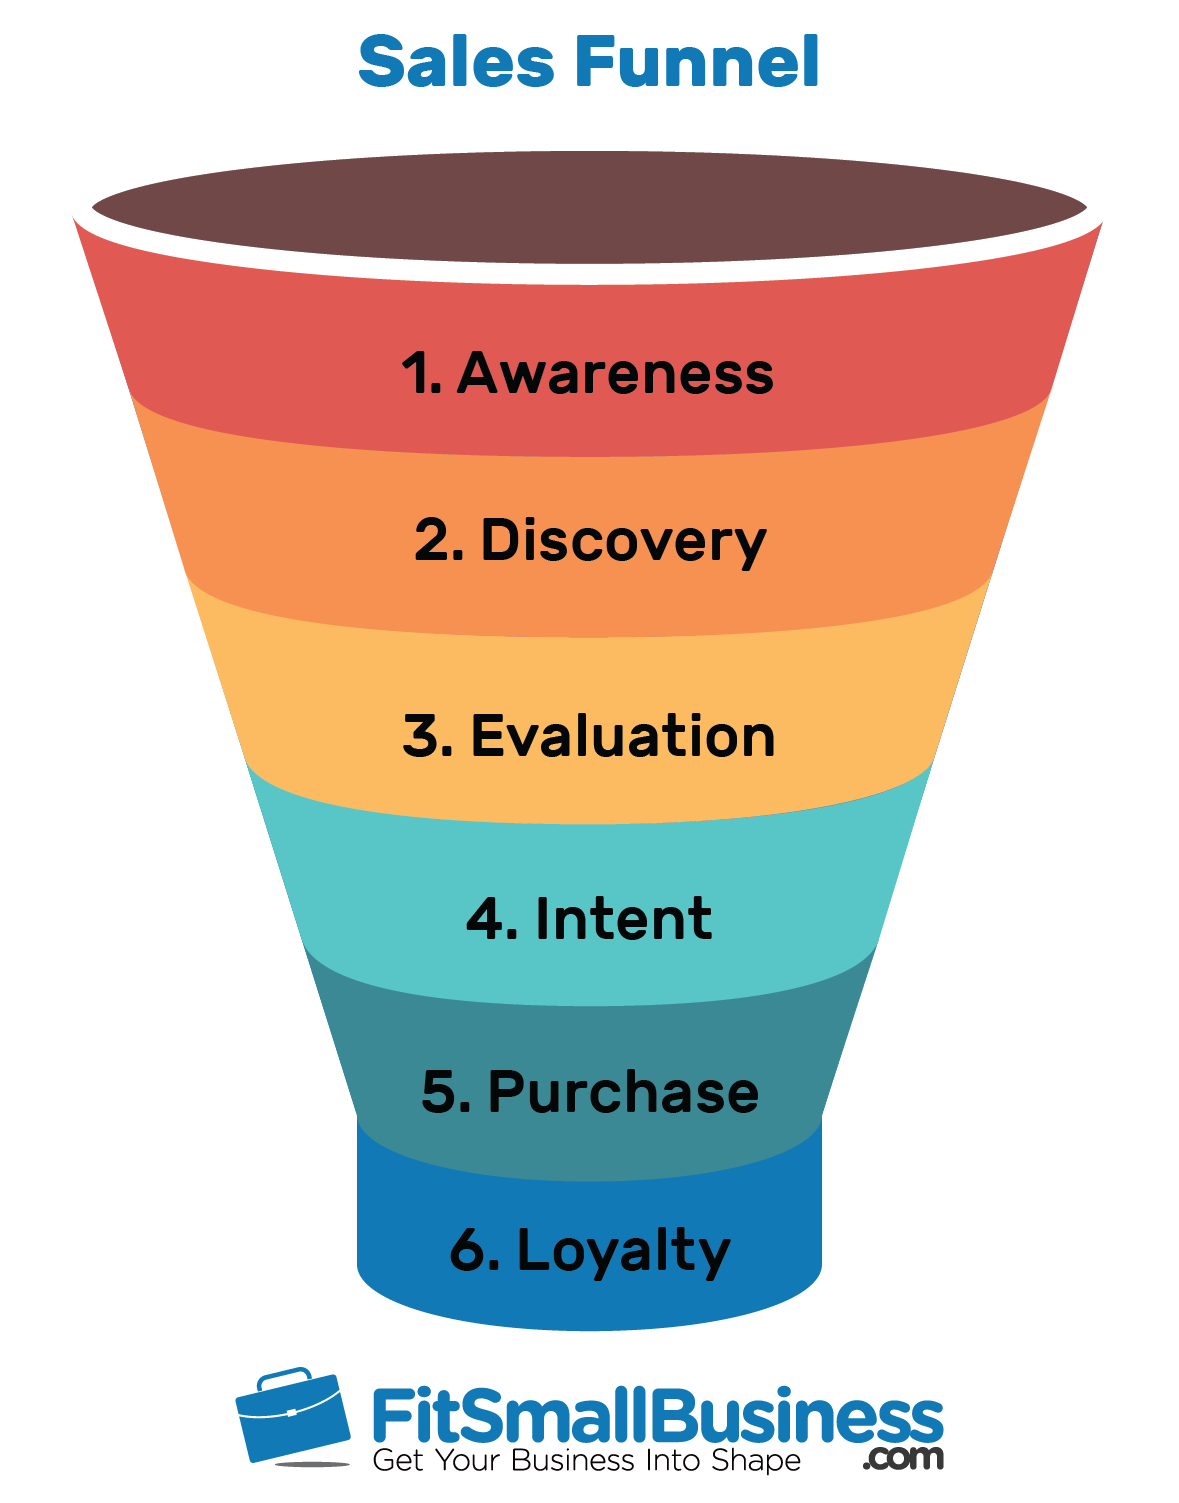 Sales funnel with different parts labeled - awareness, discovery, evaluation, intent, purchase, loyalty from fitsmallbusiness.com